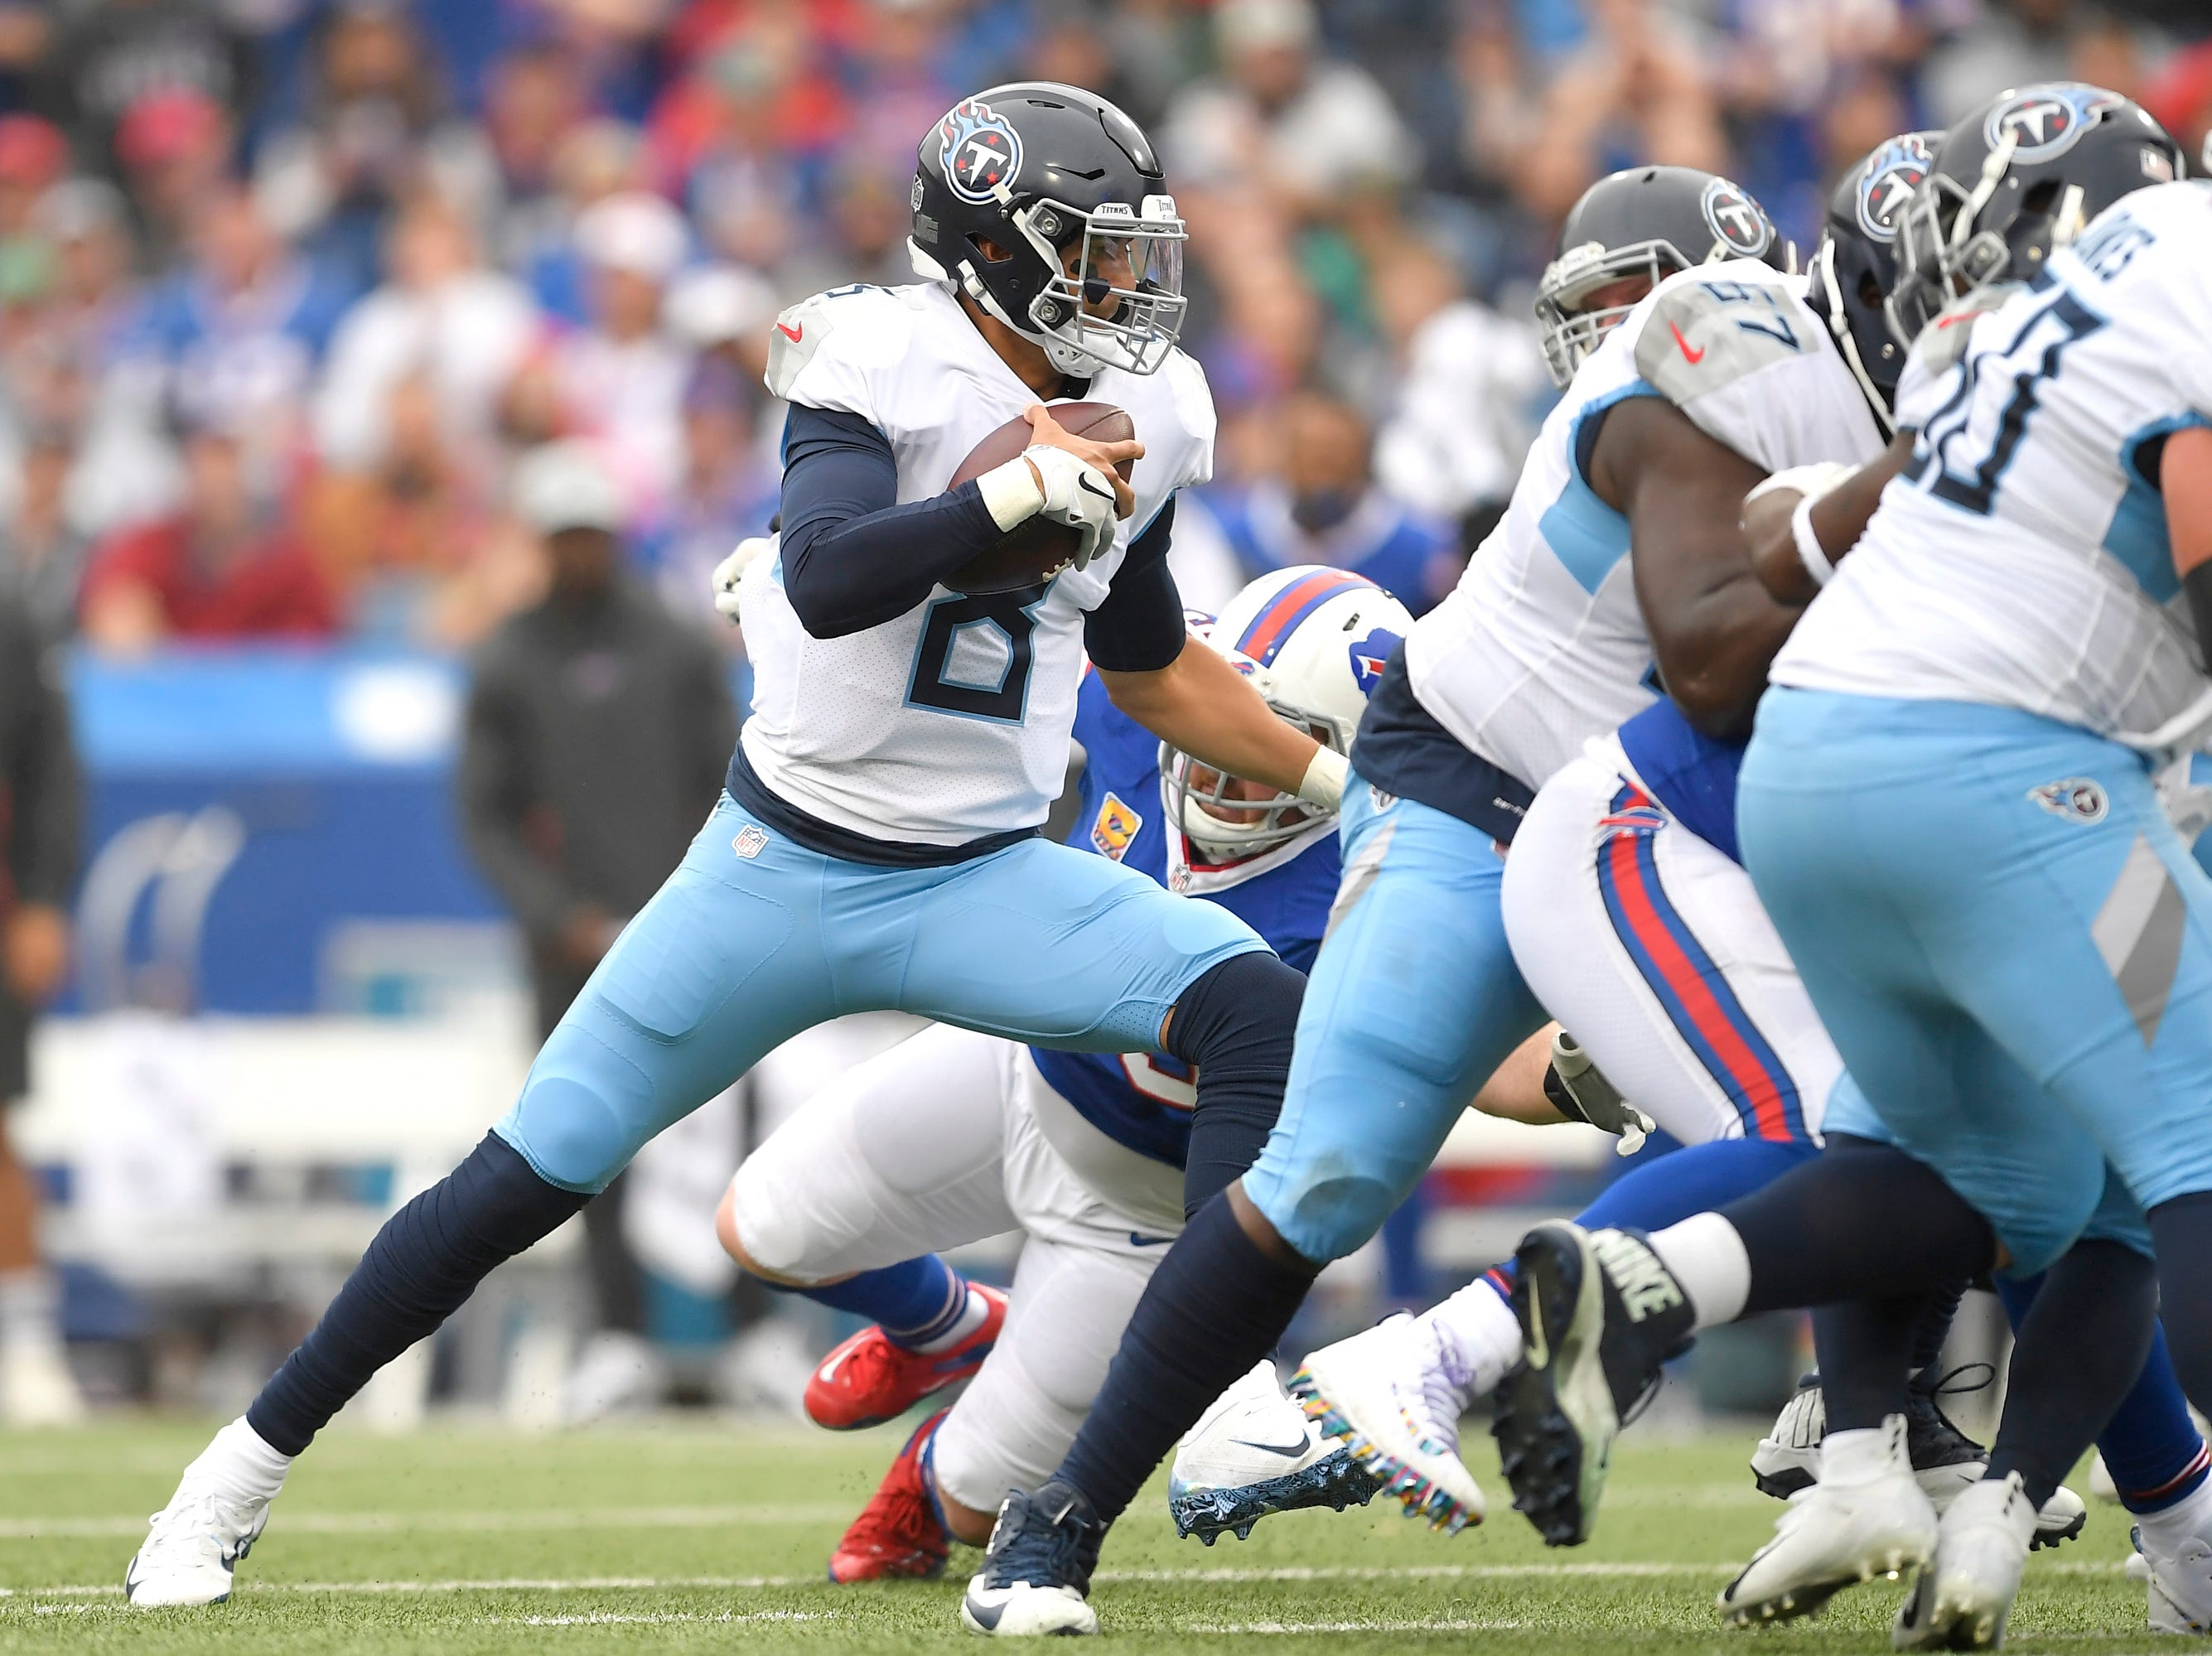 Tennessee Titans quarterback Marcus Mariota (8) scrambles against the Buffalo Bills during the first half of an NFL football game, Sunday, Oct. 7, 2018, in Orchard Park, N.Y. (AP Photo/Adrian Kraus)